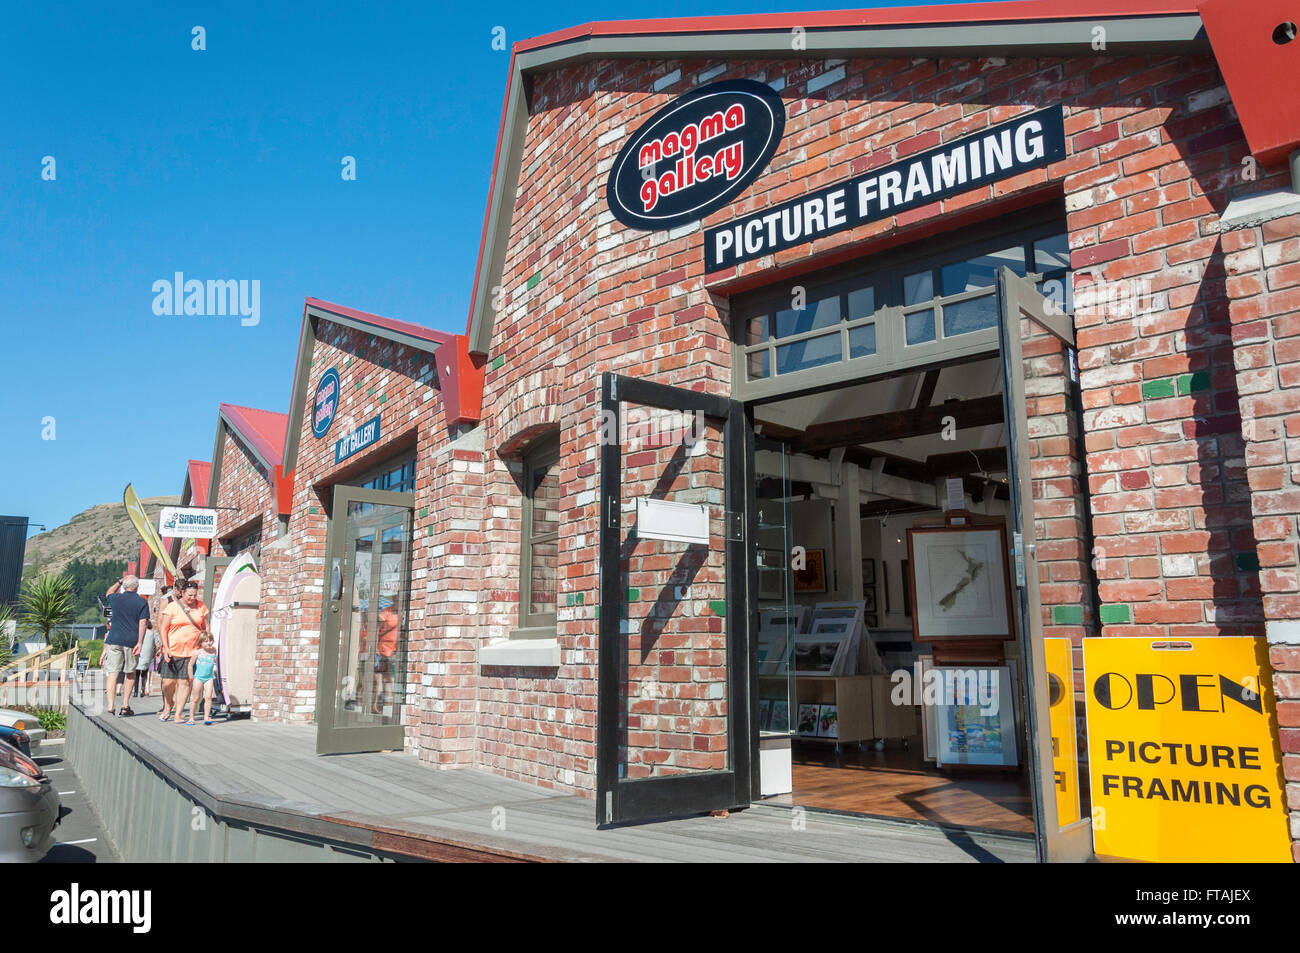 Magma Gallery at The Tannery shopping centre, Garlands Road, Woolston, Christchurch, Canterbury, New Zealand - Stock Image